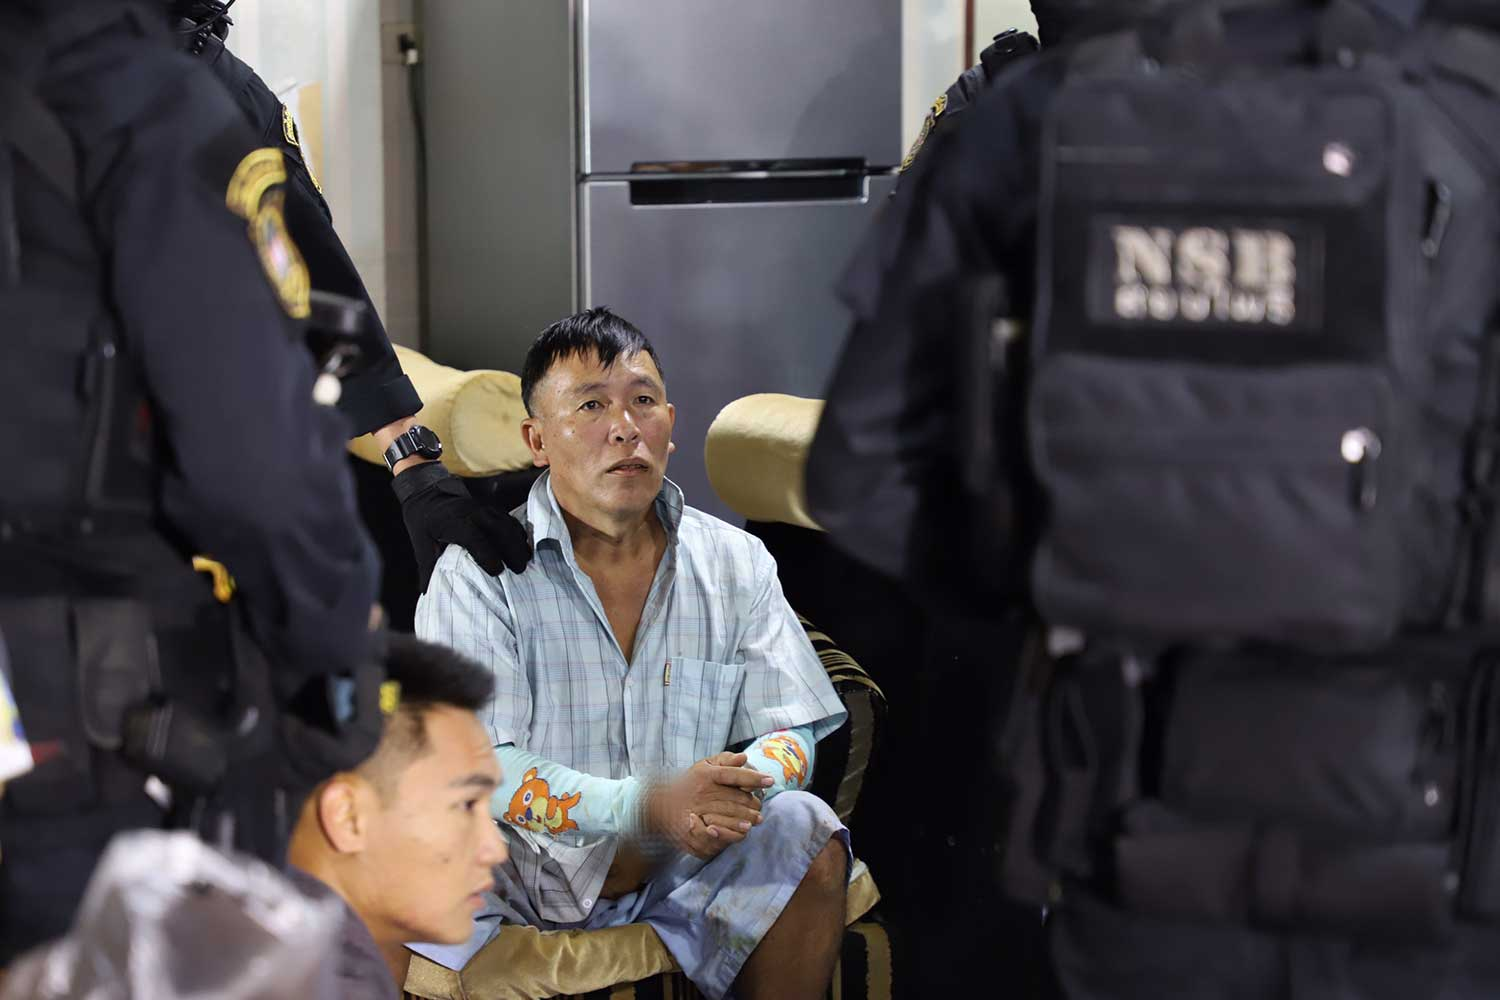 Somsak Sakhonkhiri, 48, a former assistant chief of Nong Phai village in Fang district, Chiang Mai, is arrested during raids on 22 locations targeting drug suspects in Chiang Mai and Chiang Rai on Thursday. (Police photo)